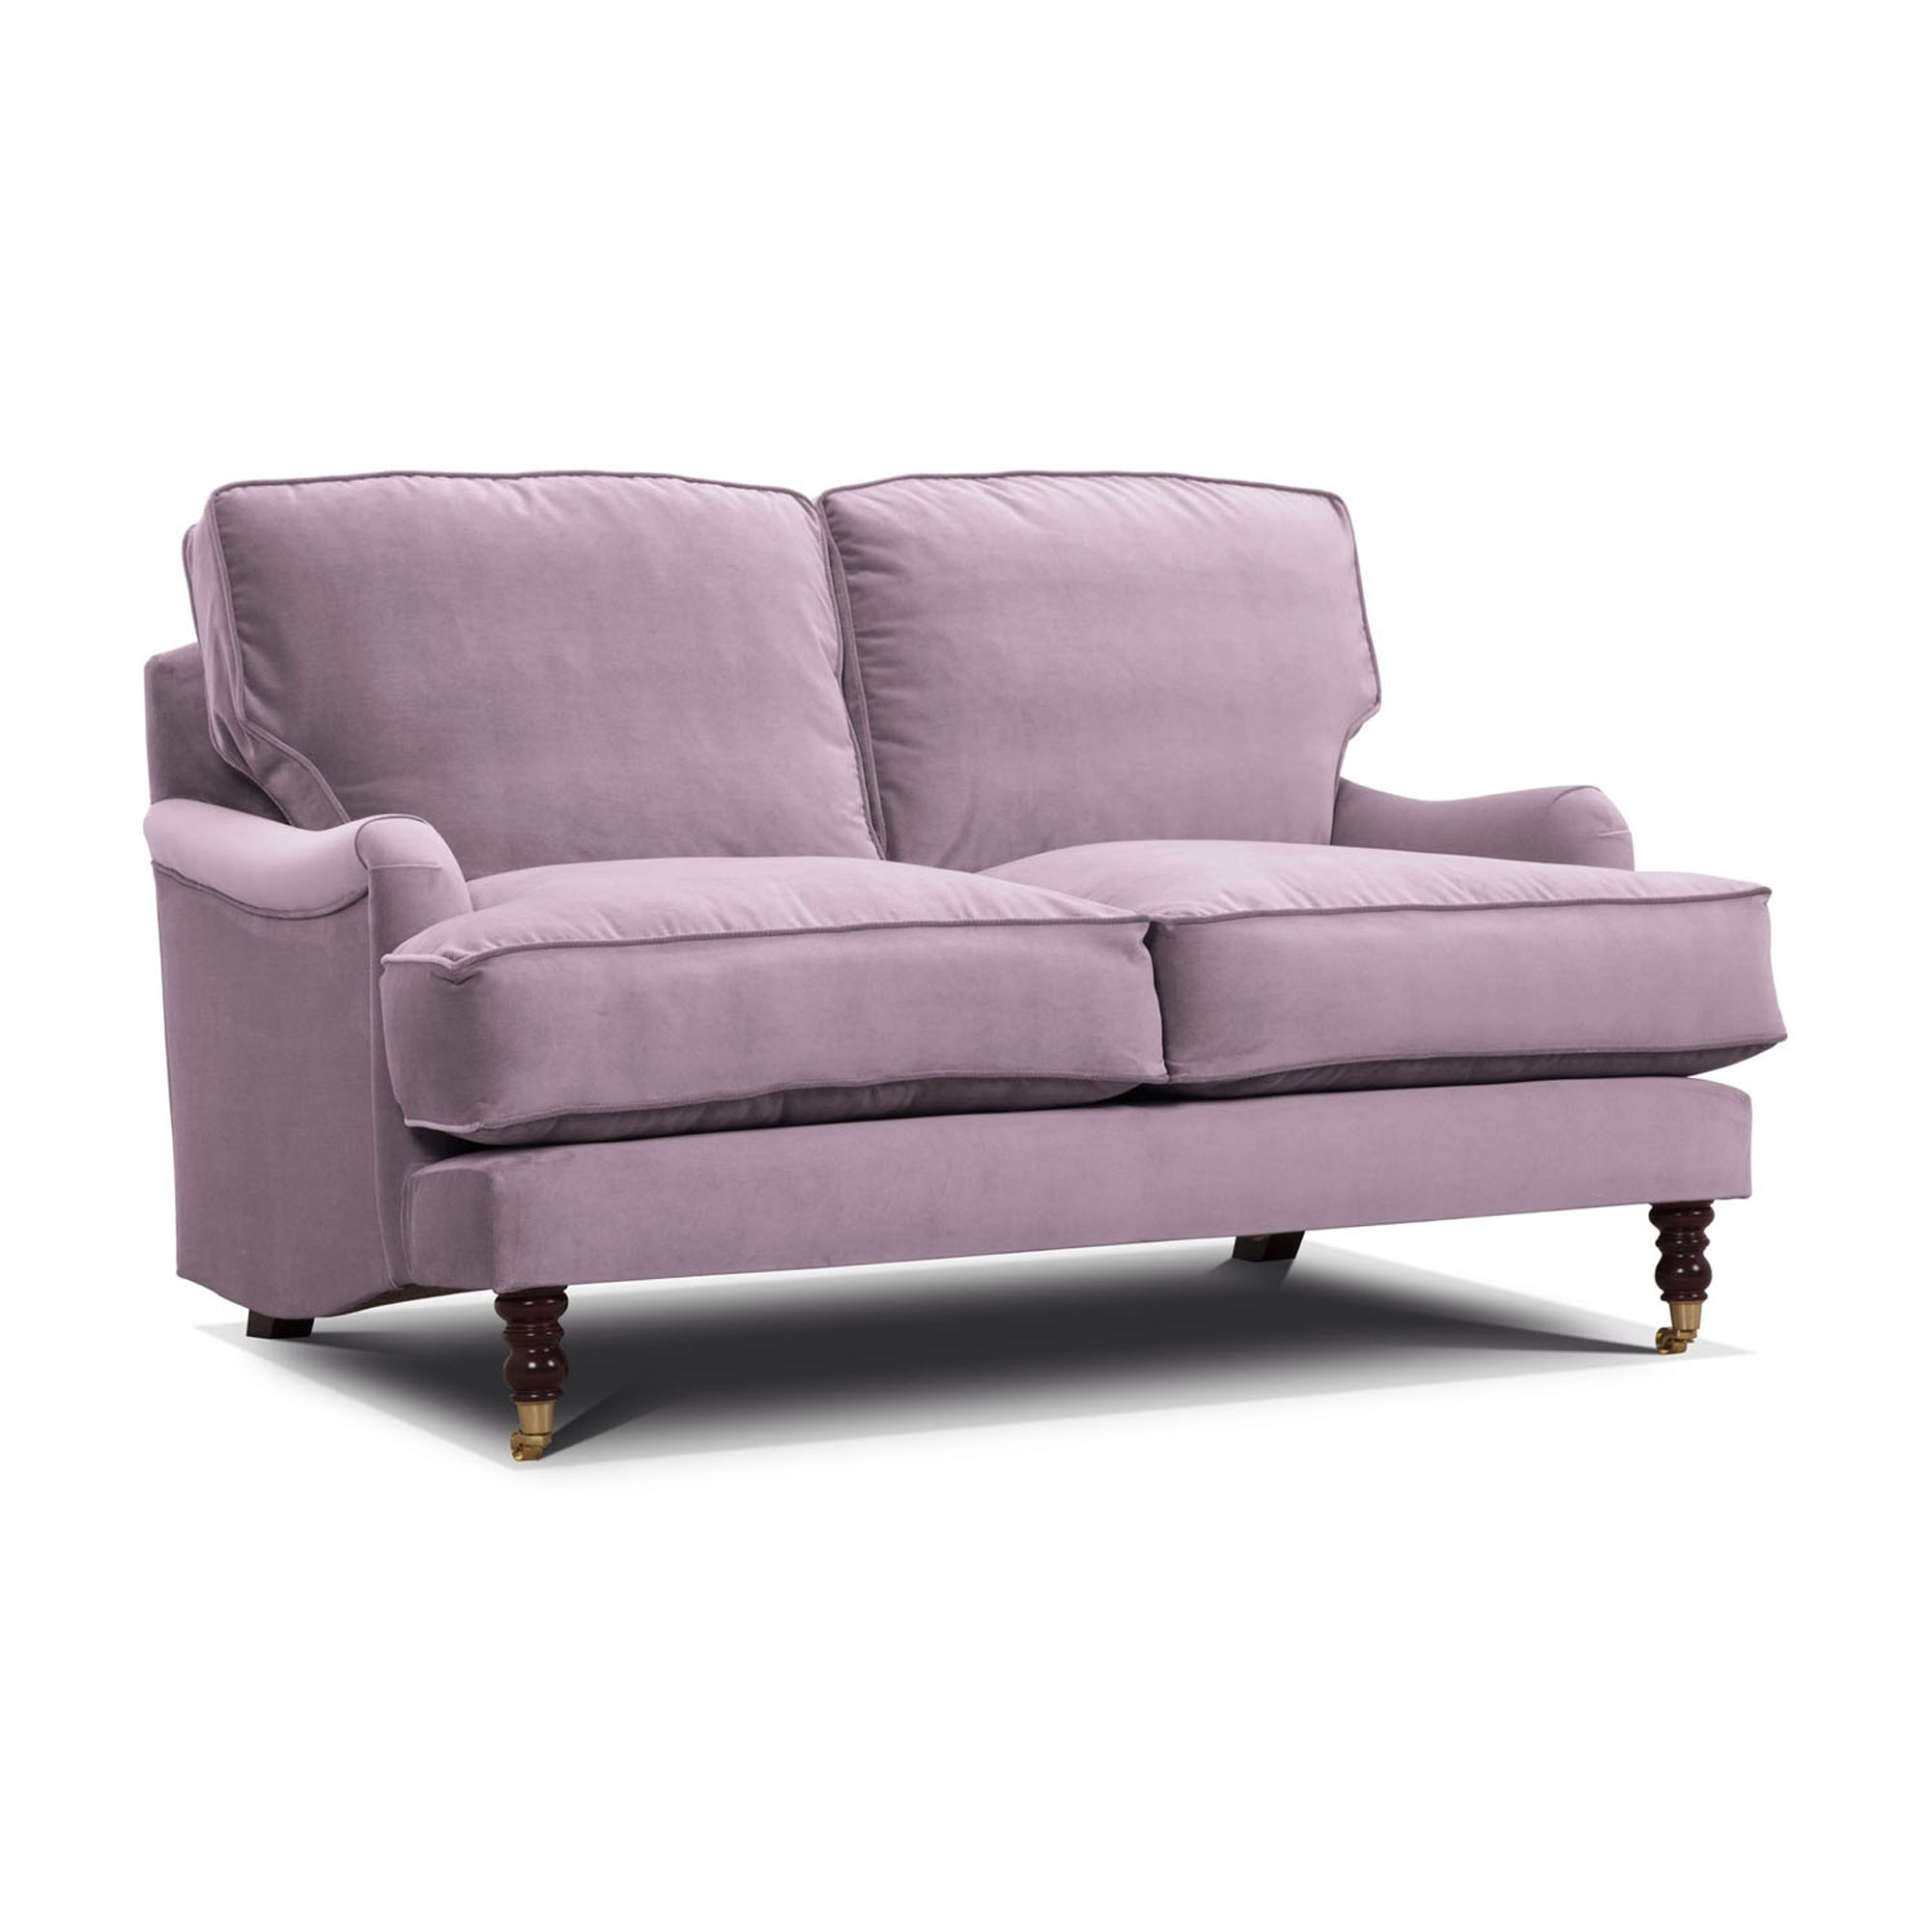 Photo of Annabelle italian velvet 3 seater sofa pale pink